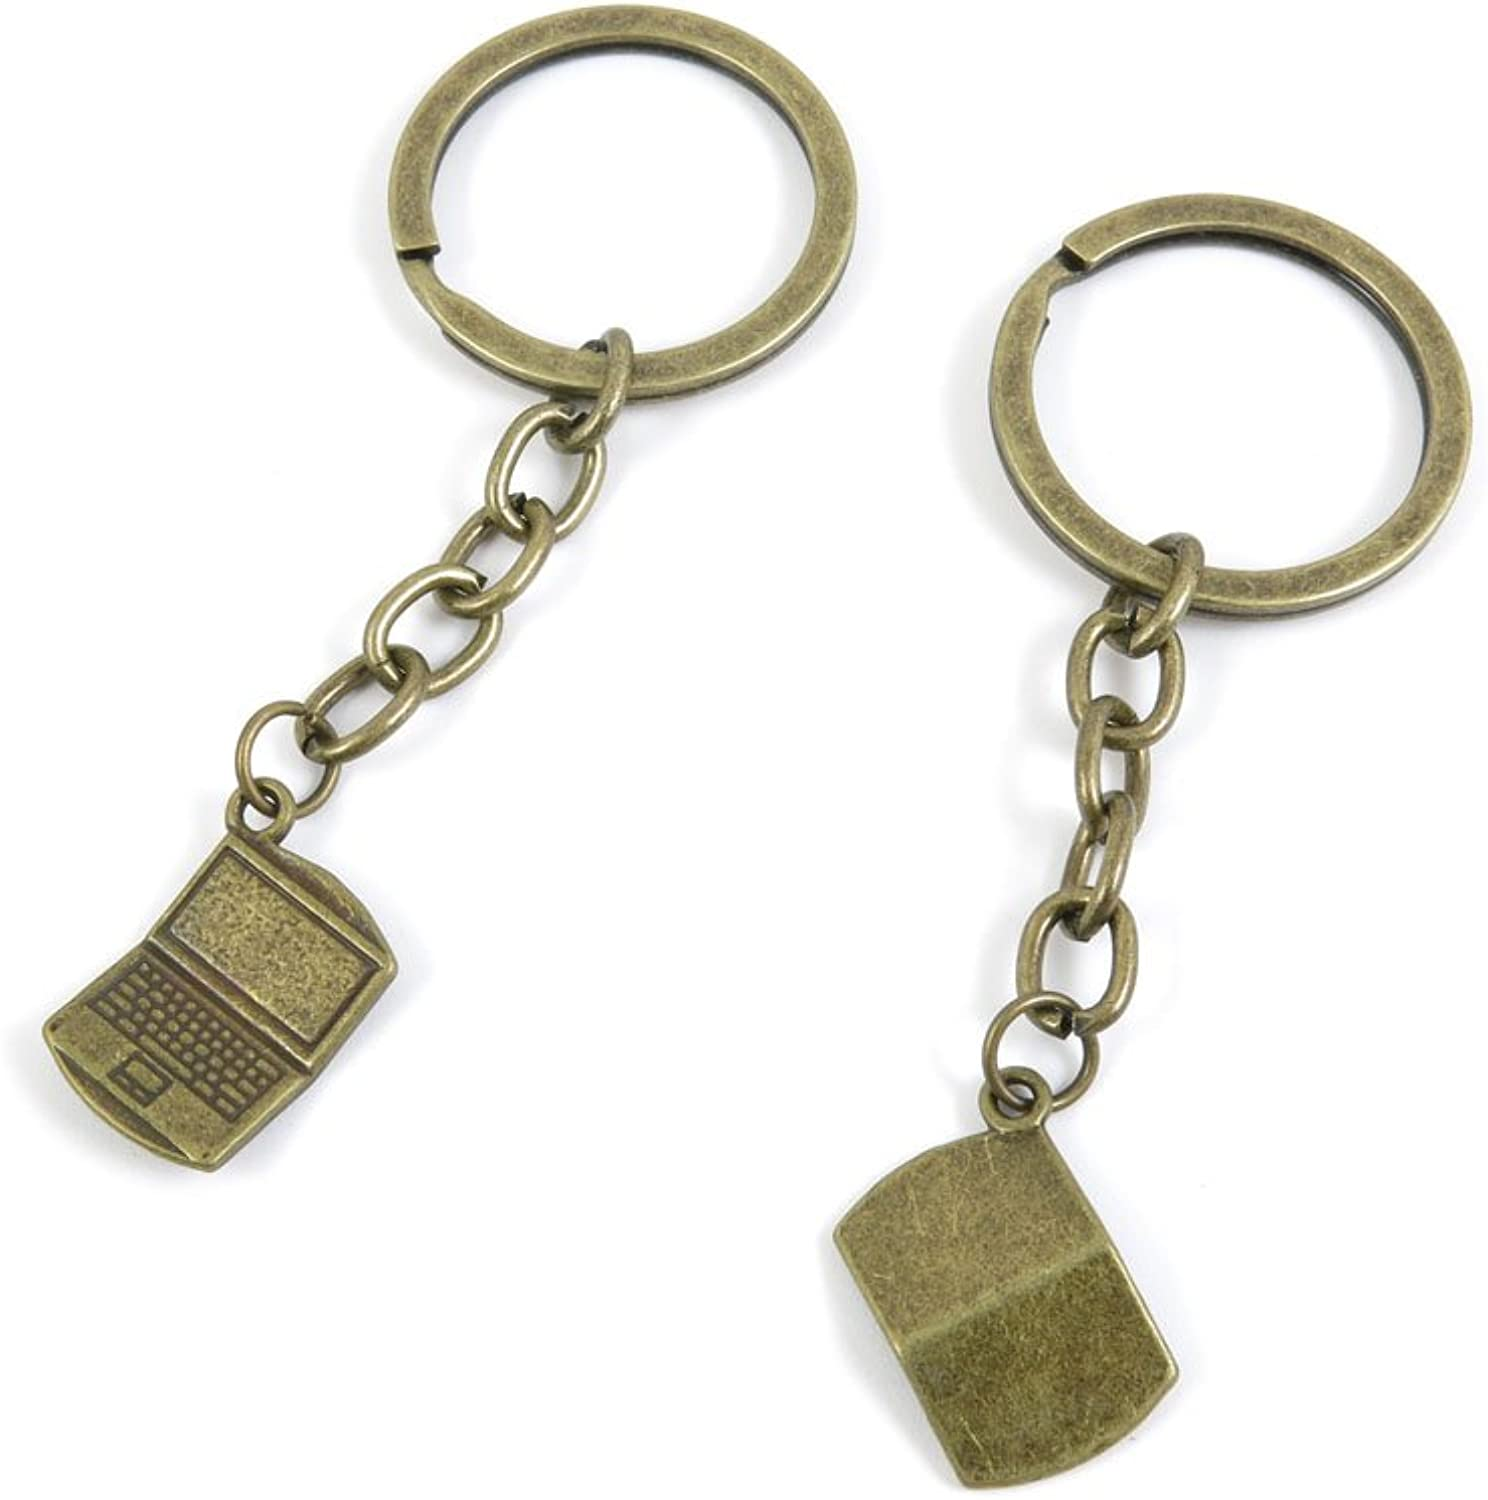 100 PCS Keyrings Keychains Key Ring Chains Tags Jewelry Findings Clasps Buckles Supplies G9BZ3 Notebook Laptop